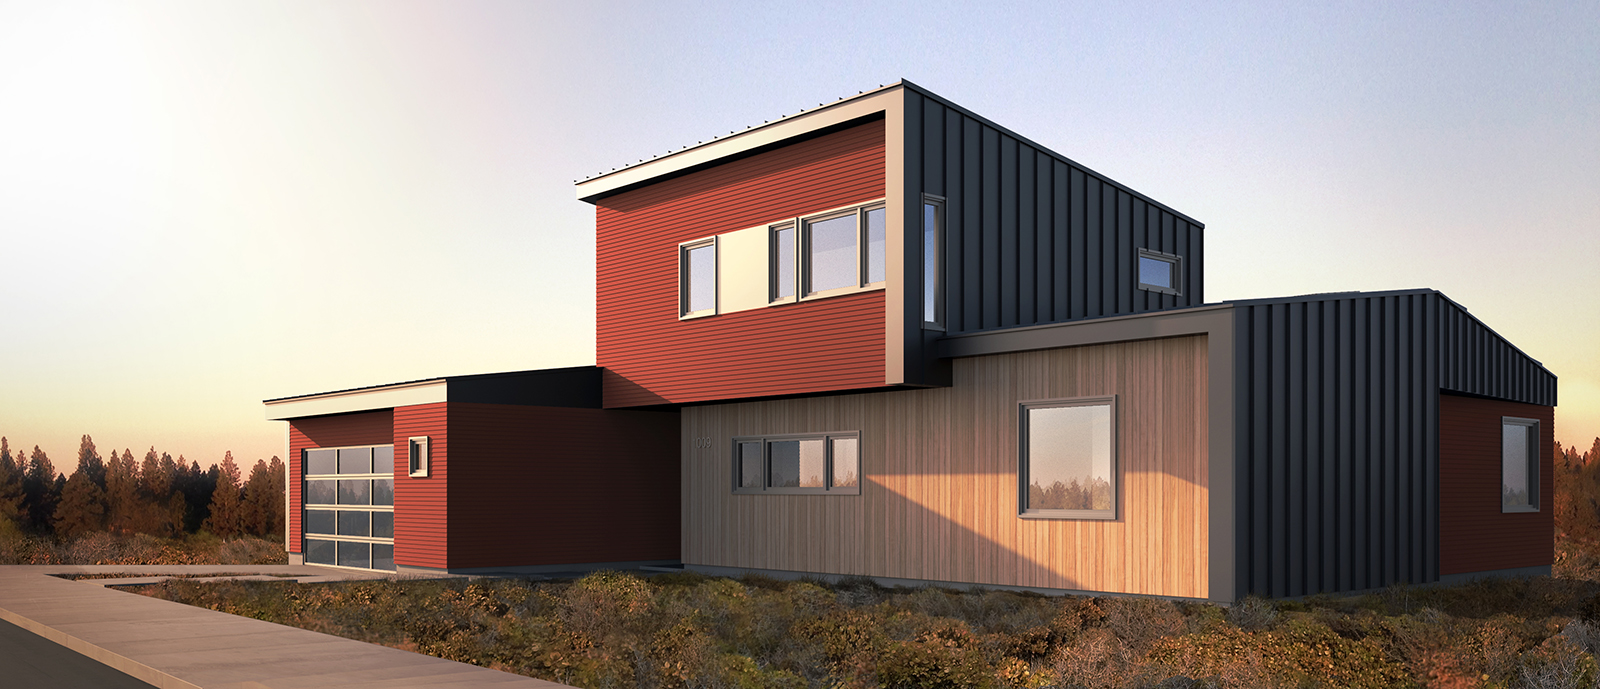 lot 9 front view render sm.jpg